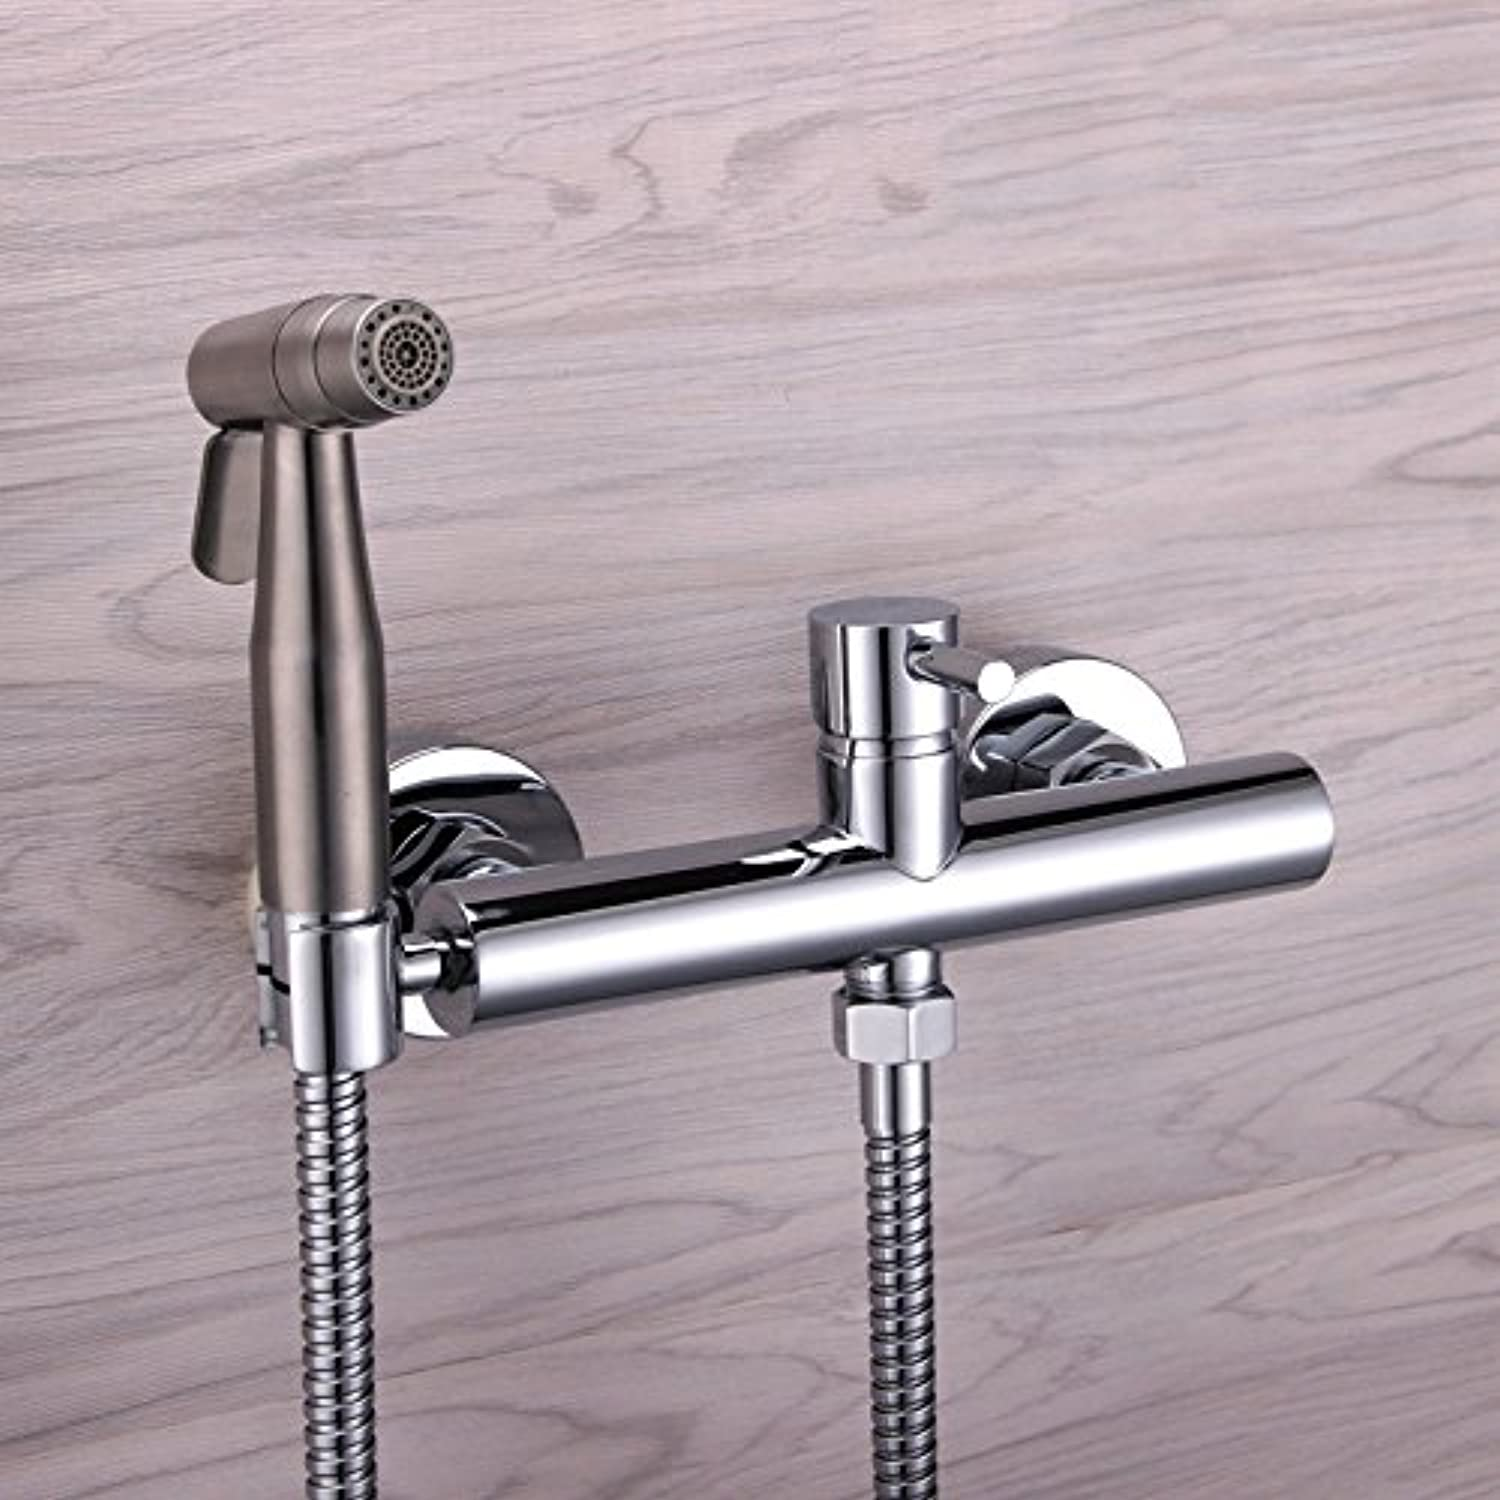 GFEI 304 stainless steel dual mode toilet flush head washer   all copper hot and cold faucet kitchen cleaning gun set